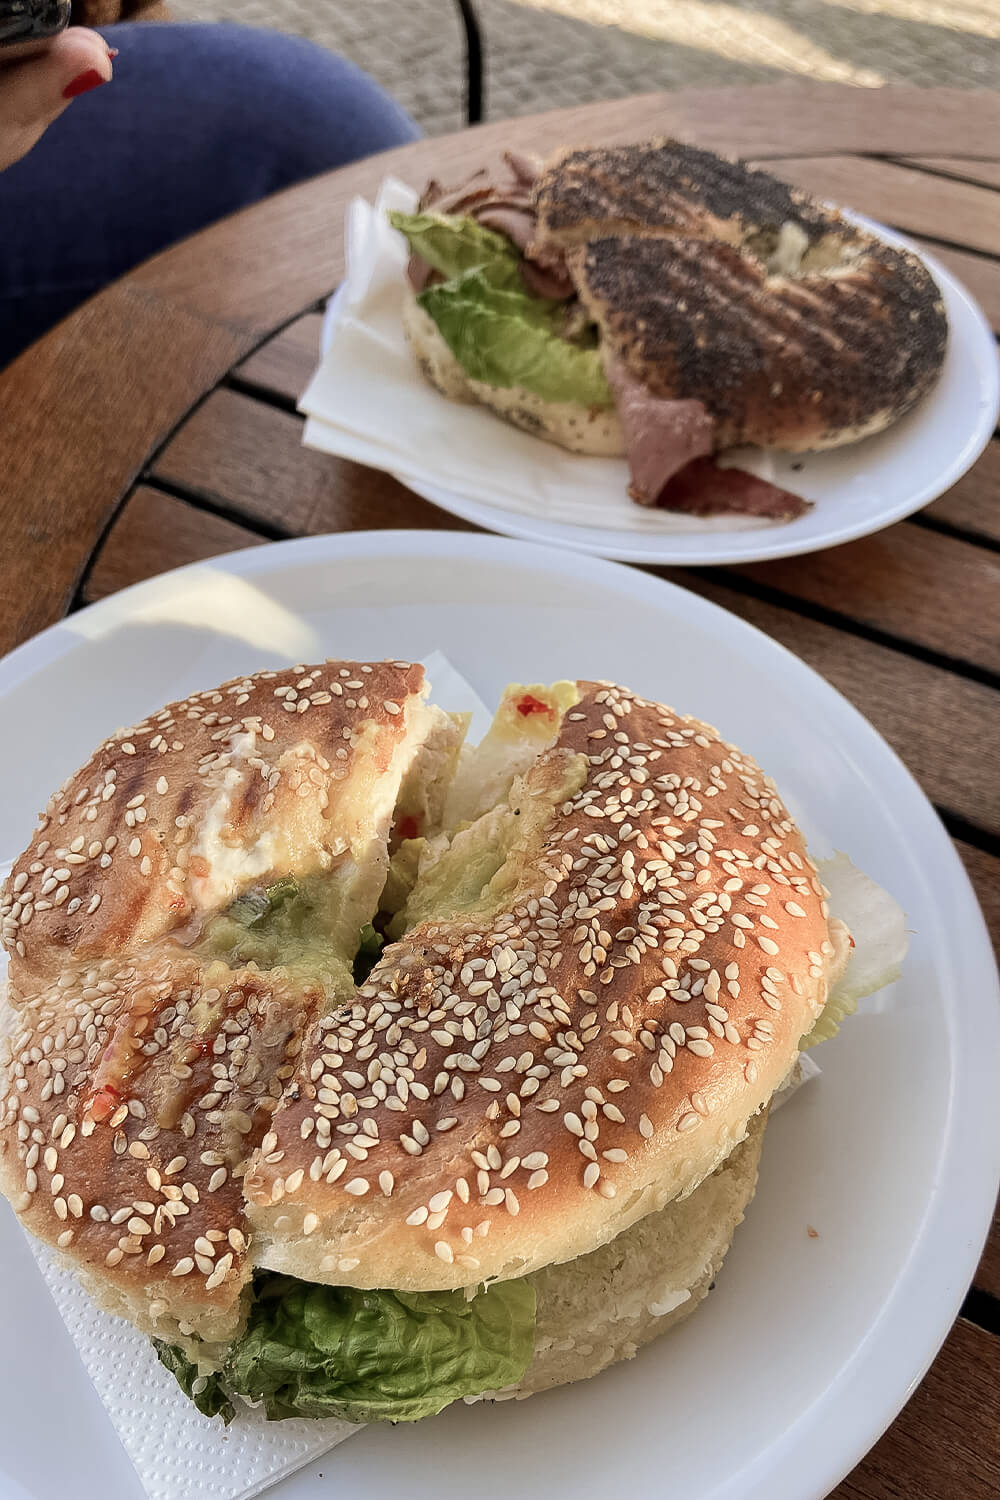 Hot Mexican & Pastrami New York Style Bagel im Bagels & Coffee in Potsdam